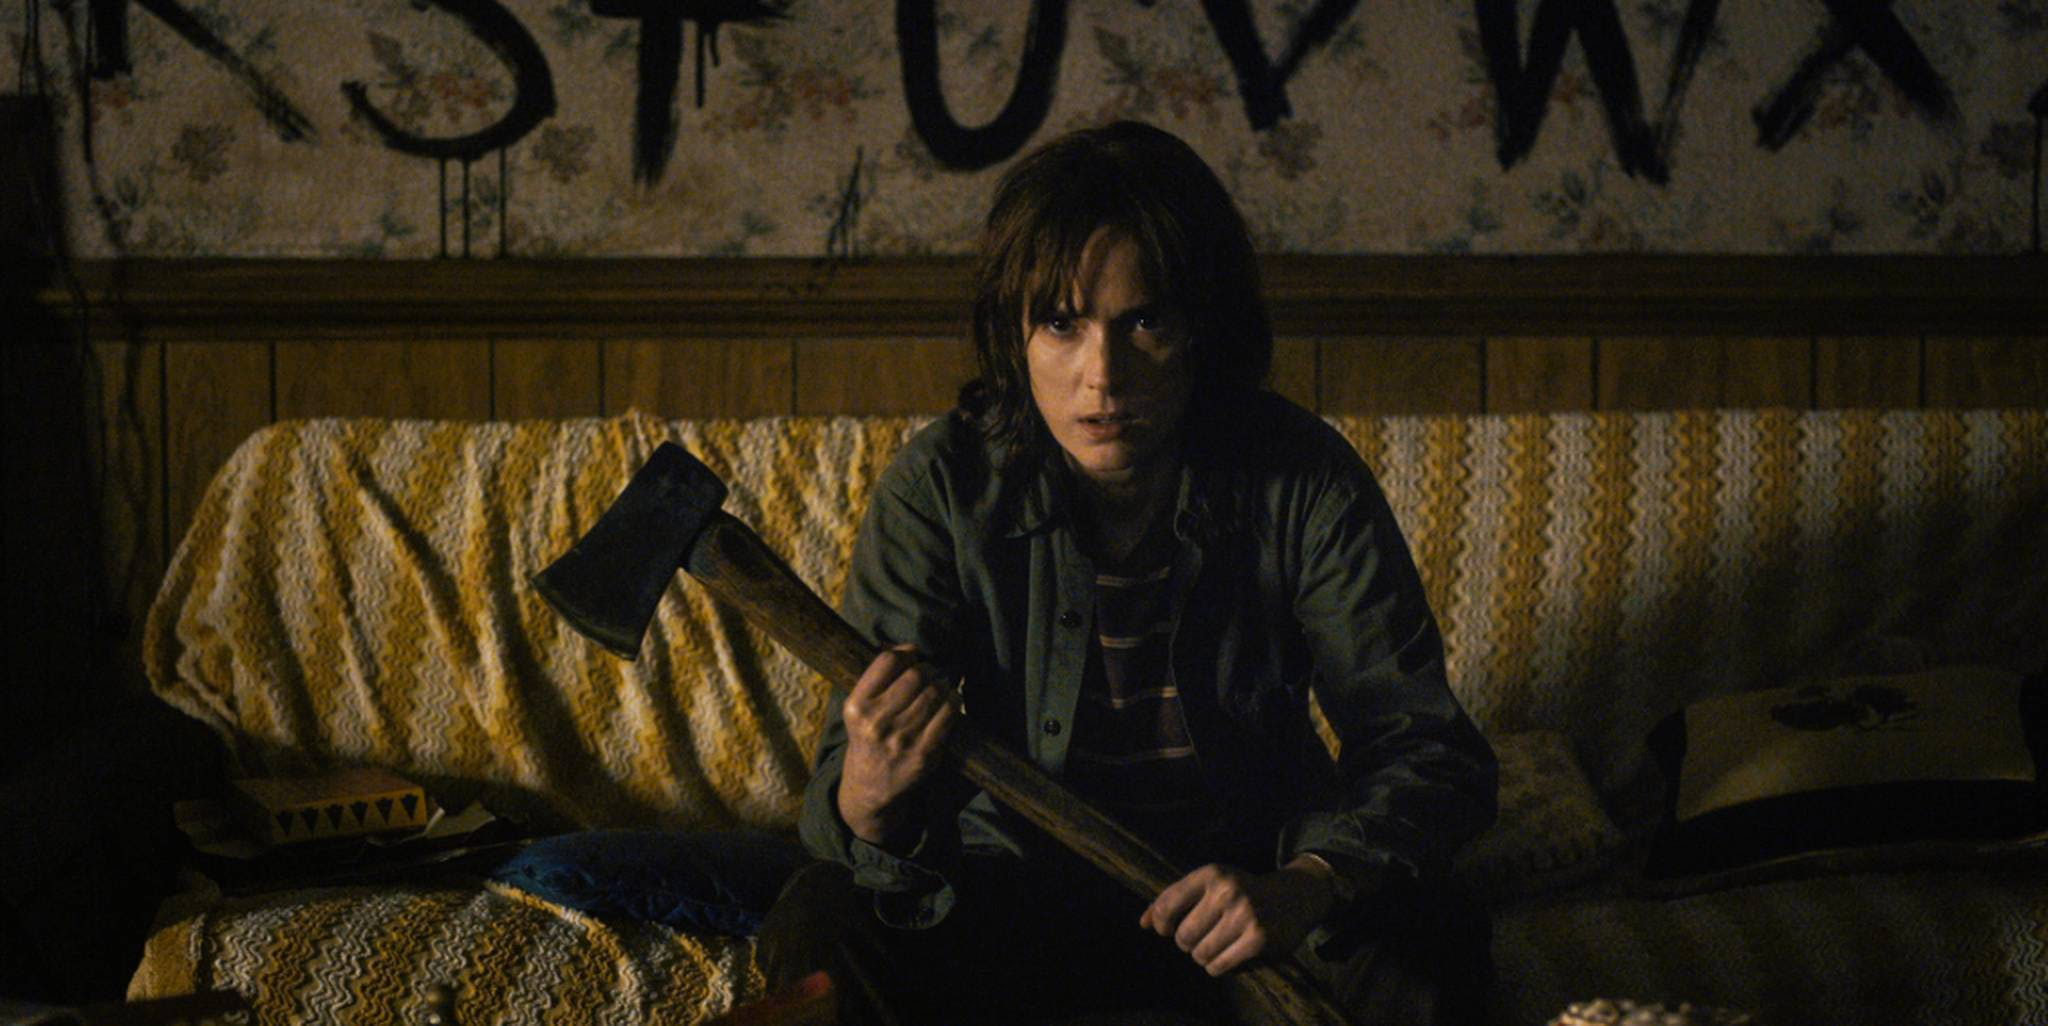 How much does Netflix cost: Stranger Things